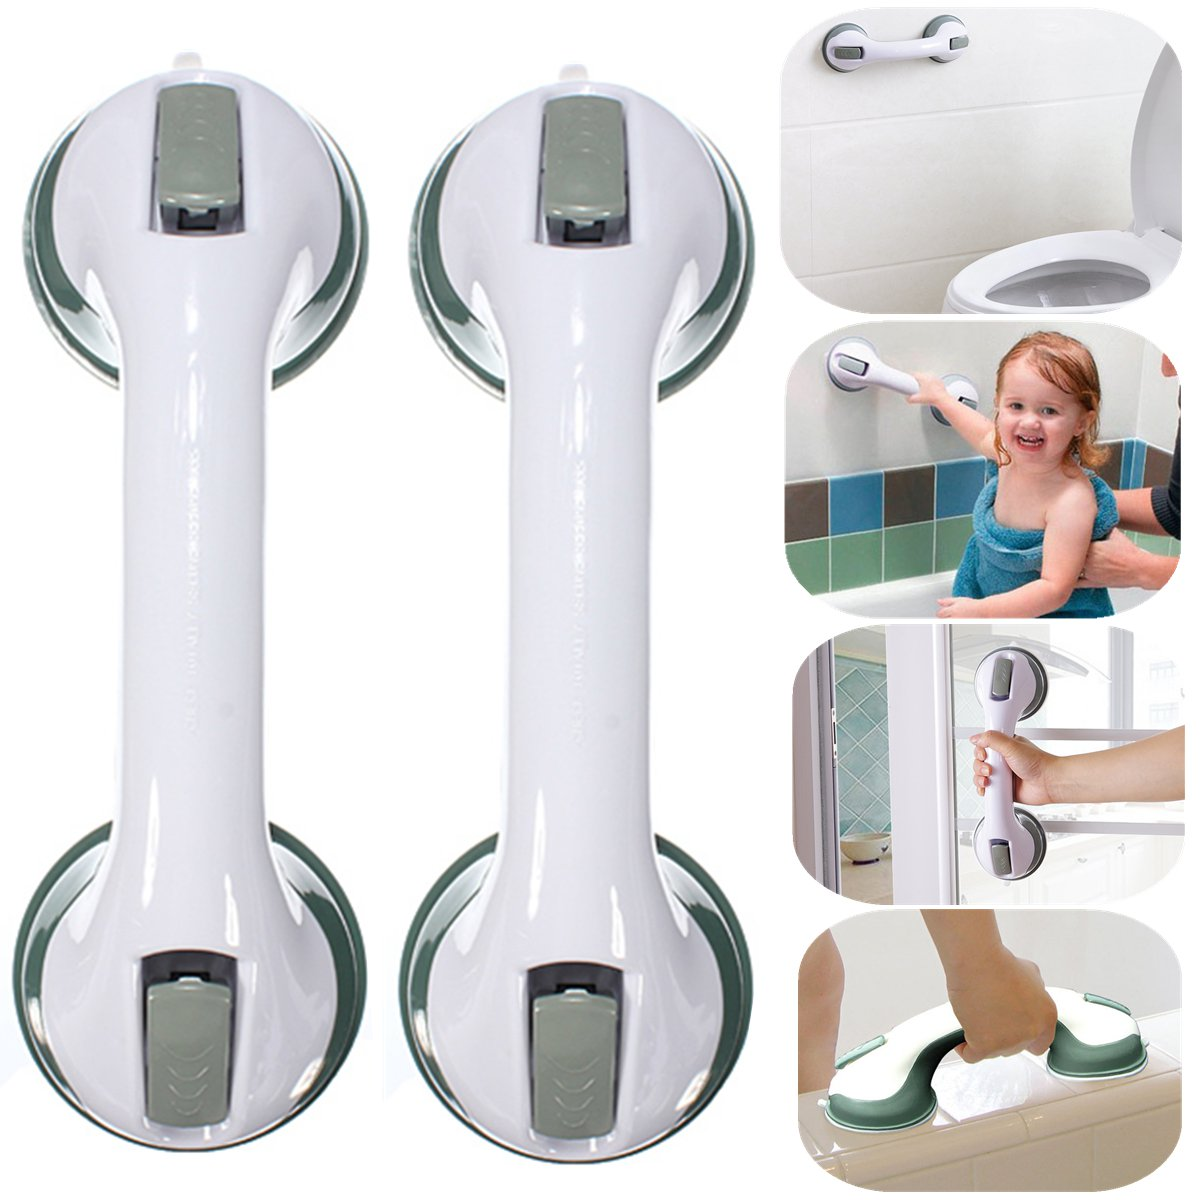 1 Pair Strong Suction Cup Safety Anti-Slip Waterproof Support Grab Bar Grip Handle Handrail for Bathroom Toilet Tub Shower Wall Mount Handle Assist Bar Helper